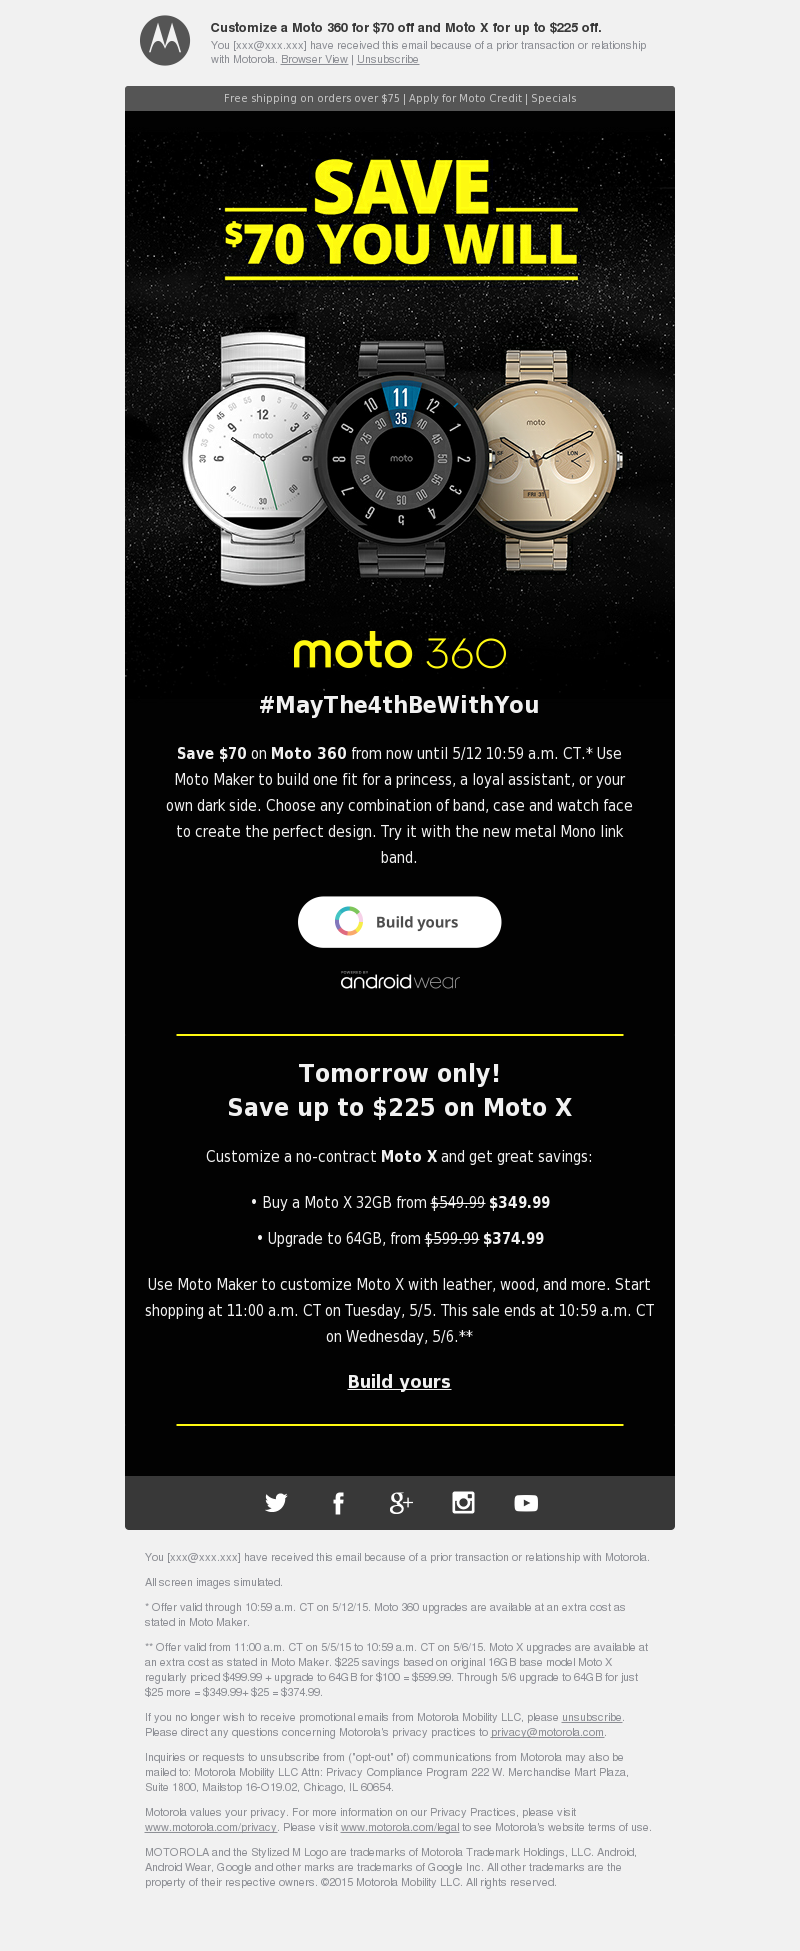 Customize a Moto 360 for $70 off and Moto X for up to $225 off. You [xxx@xx